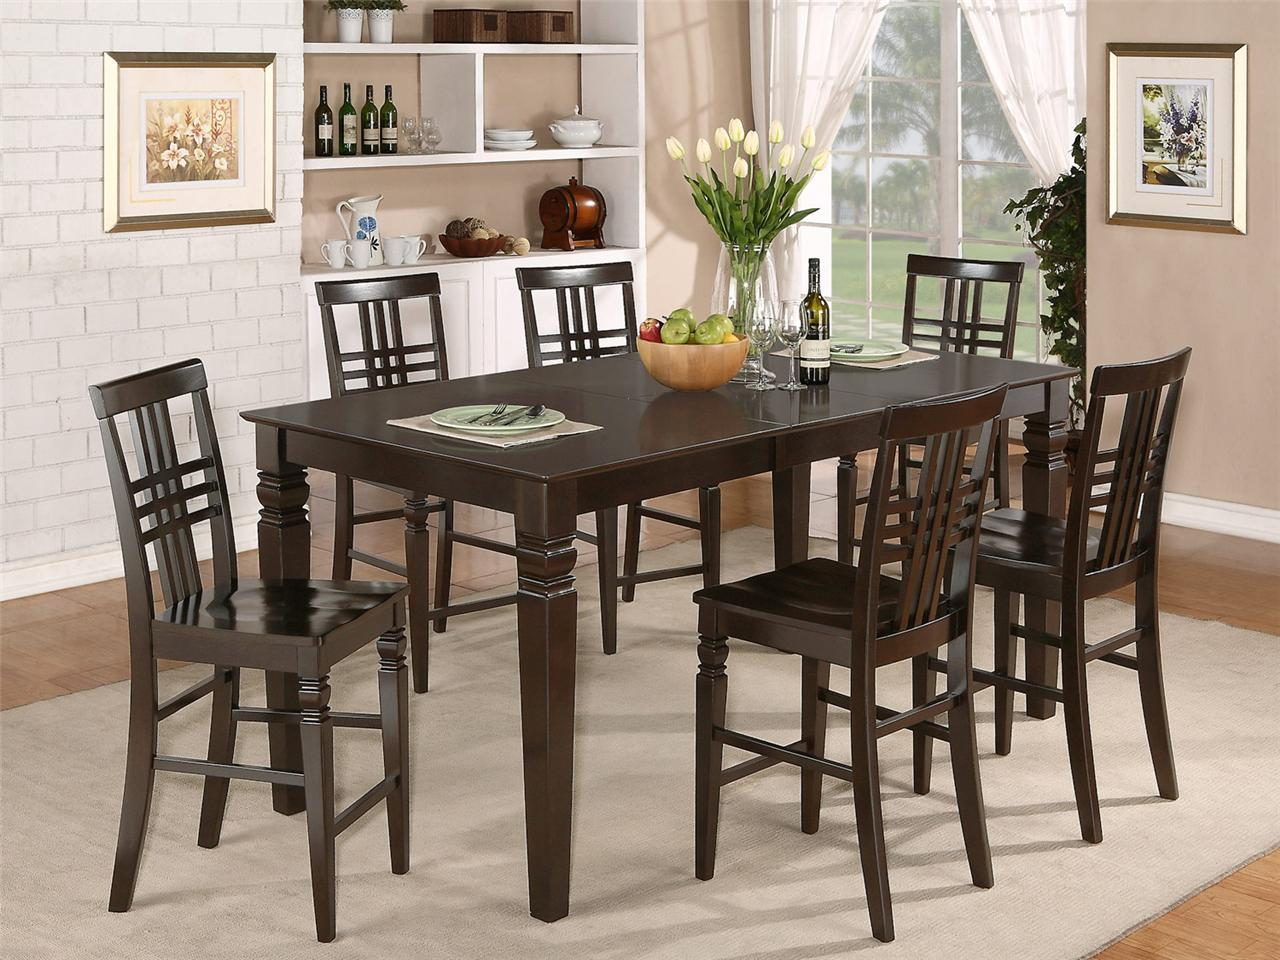 details about 9pc rectangular counter height dining room table set 8